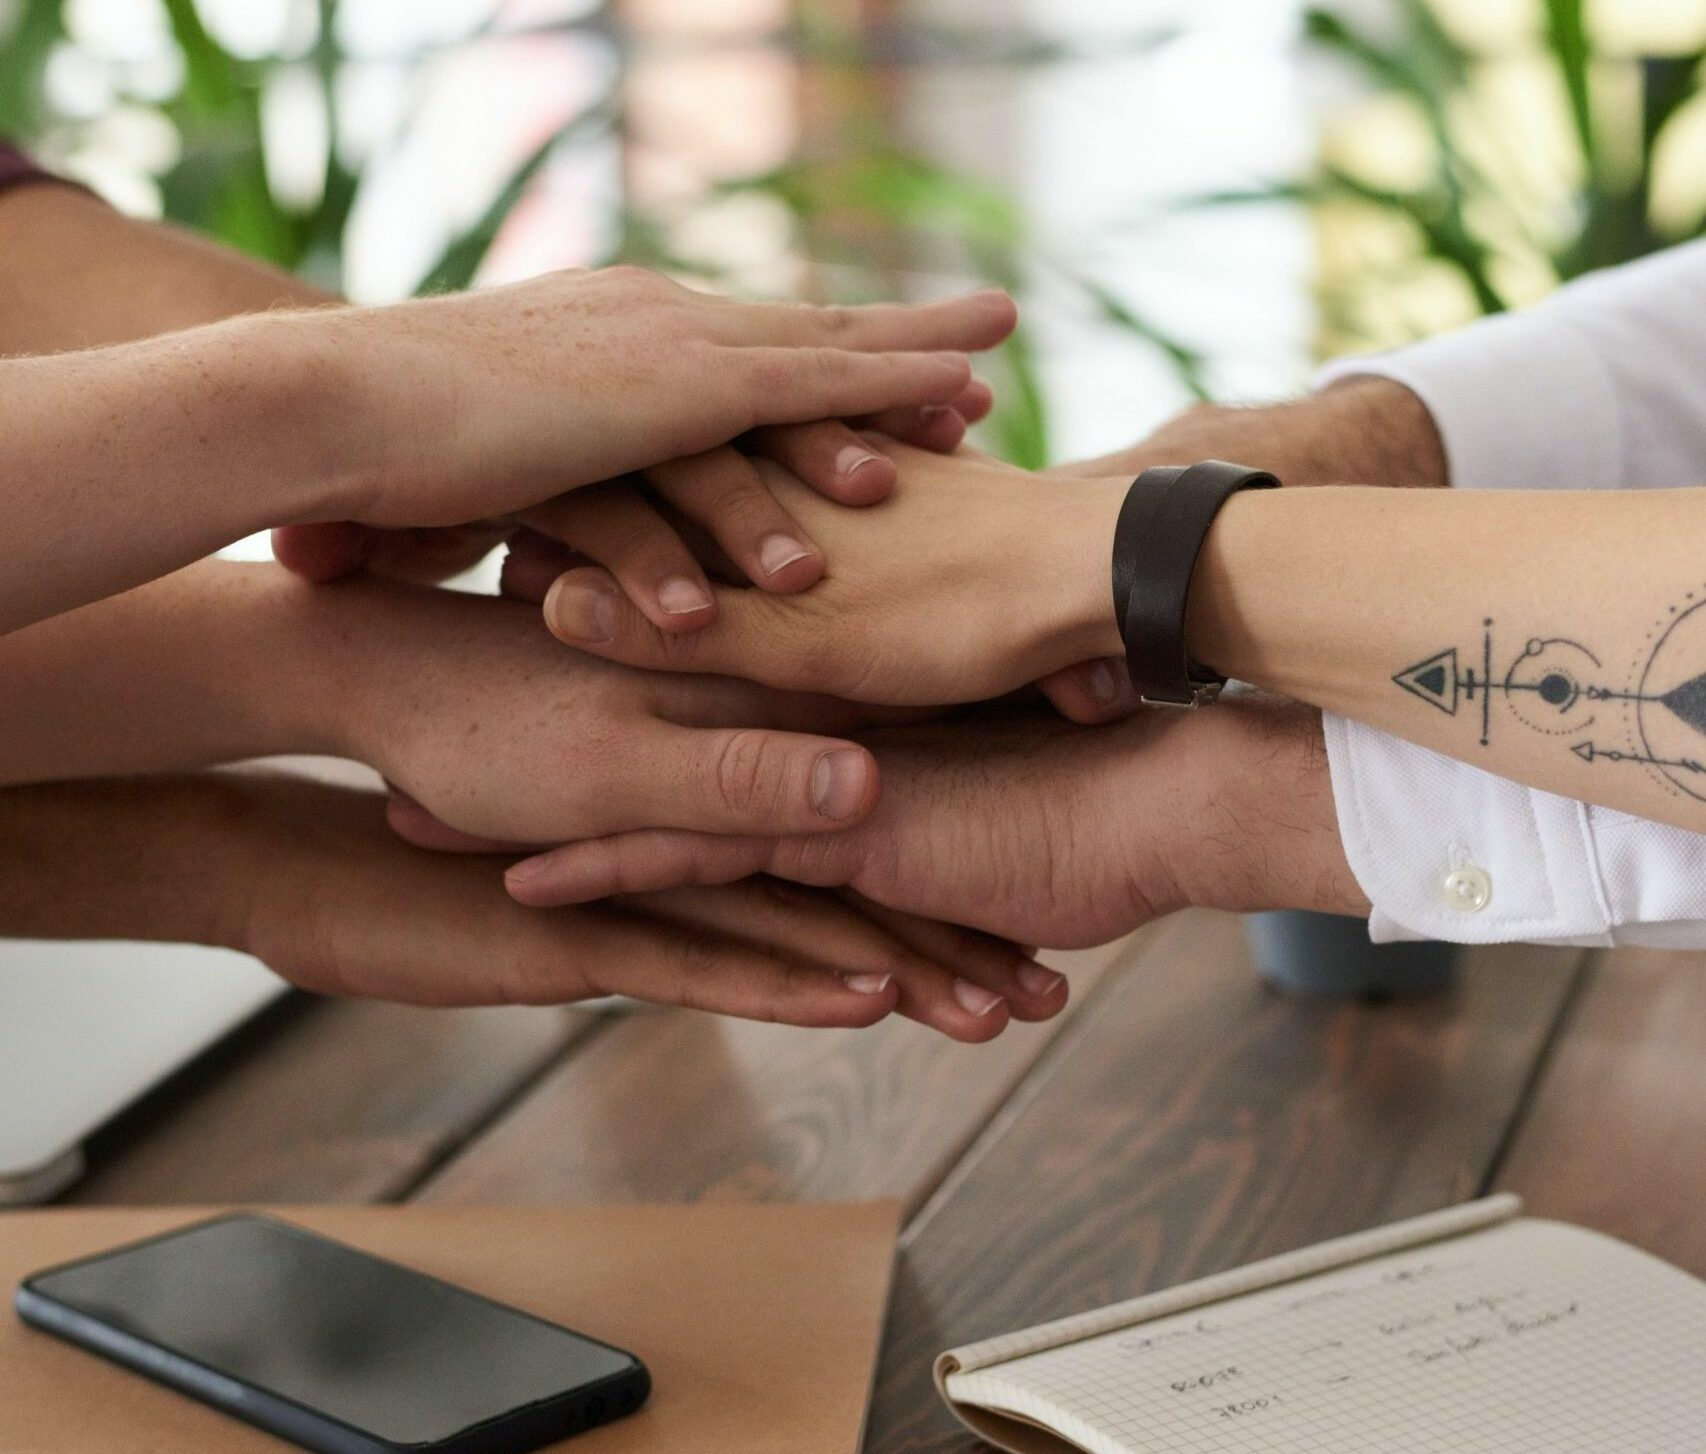 a group of people stacking their hands together